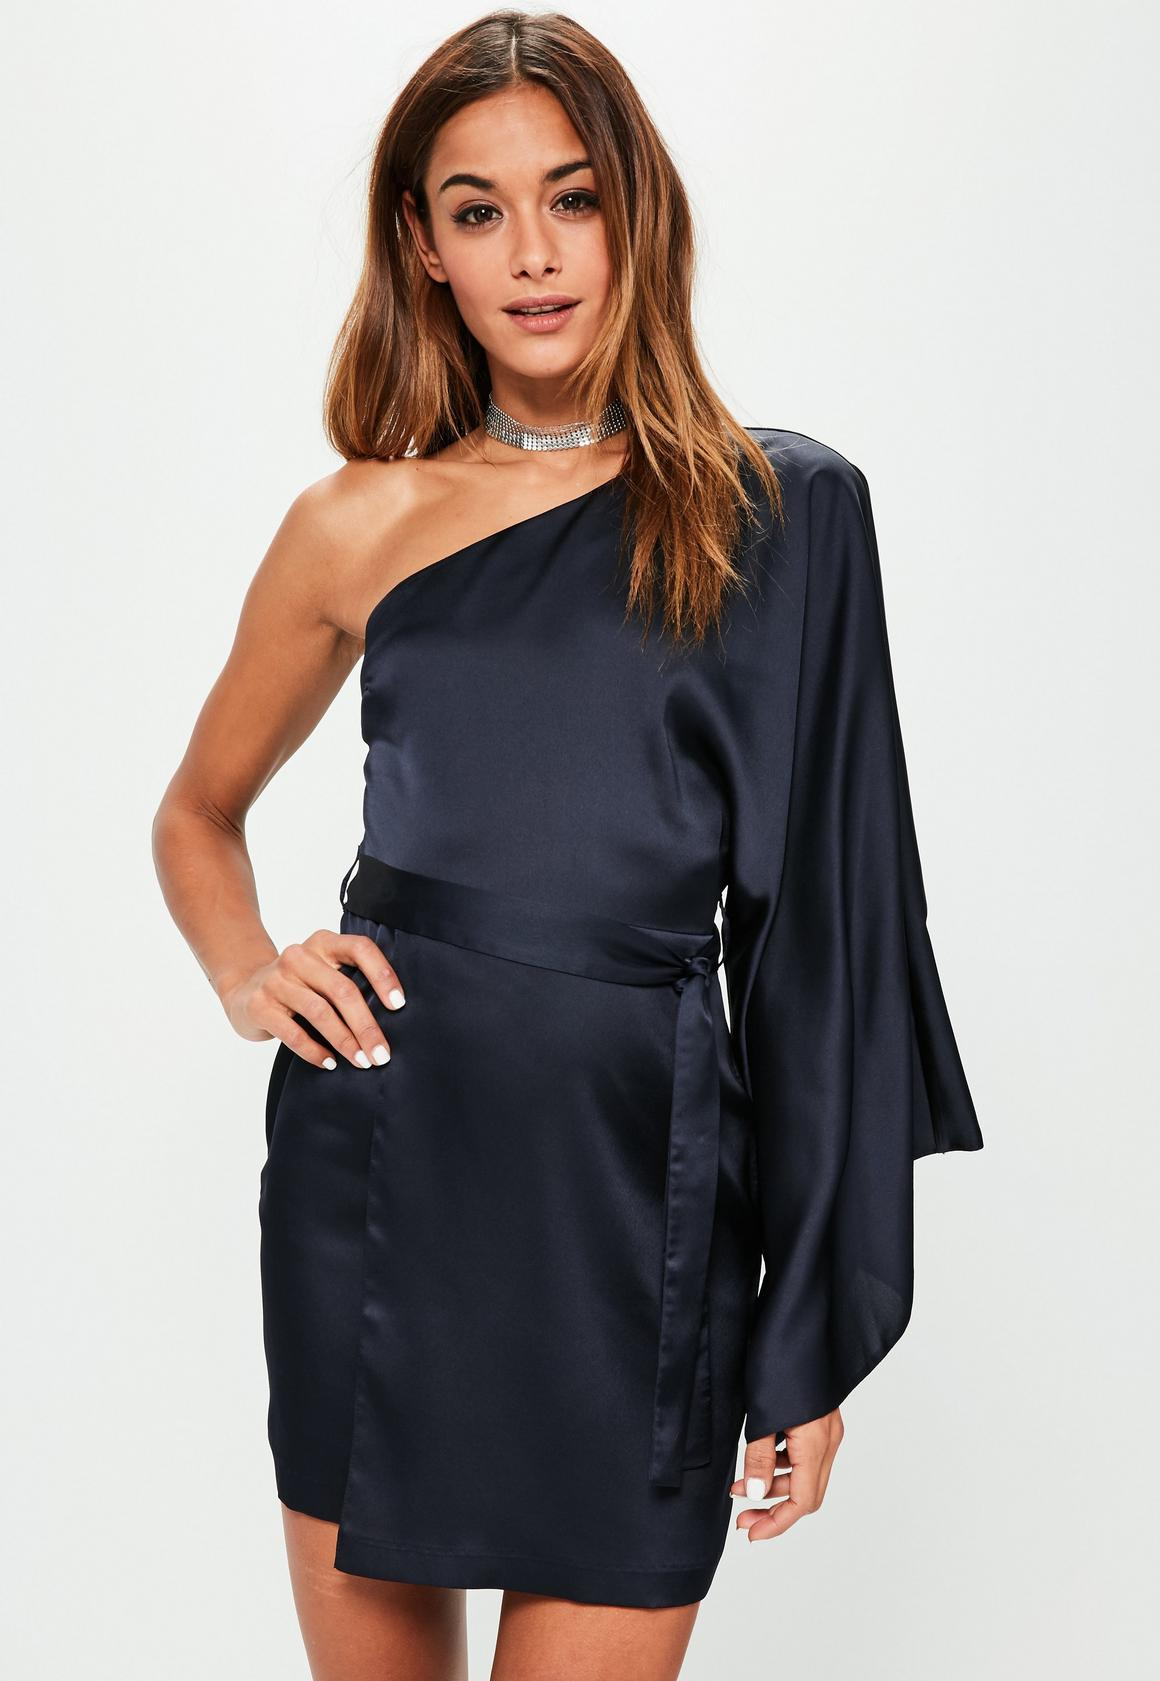 One Shoulder Dresses | Asymmetric Dress - Missguided